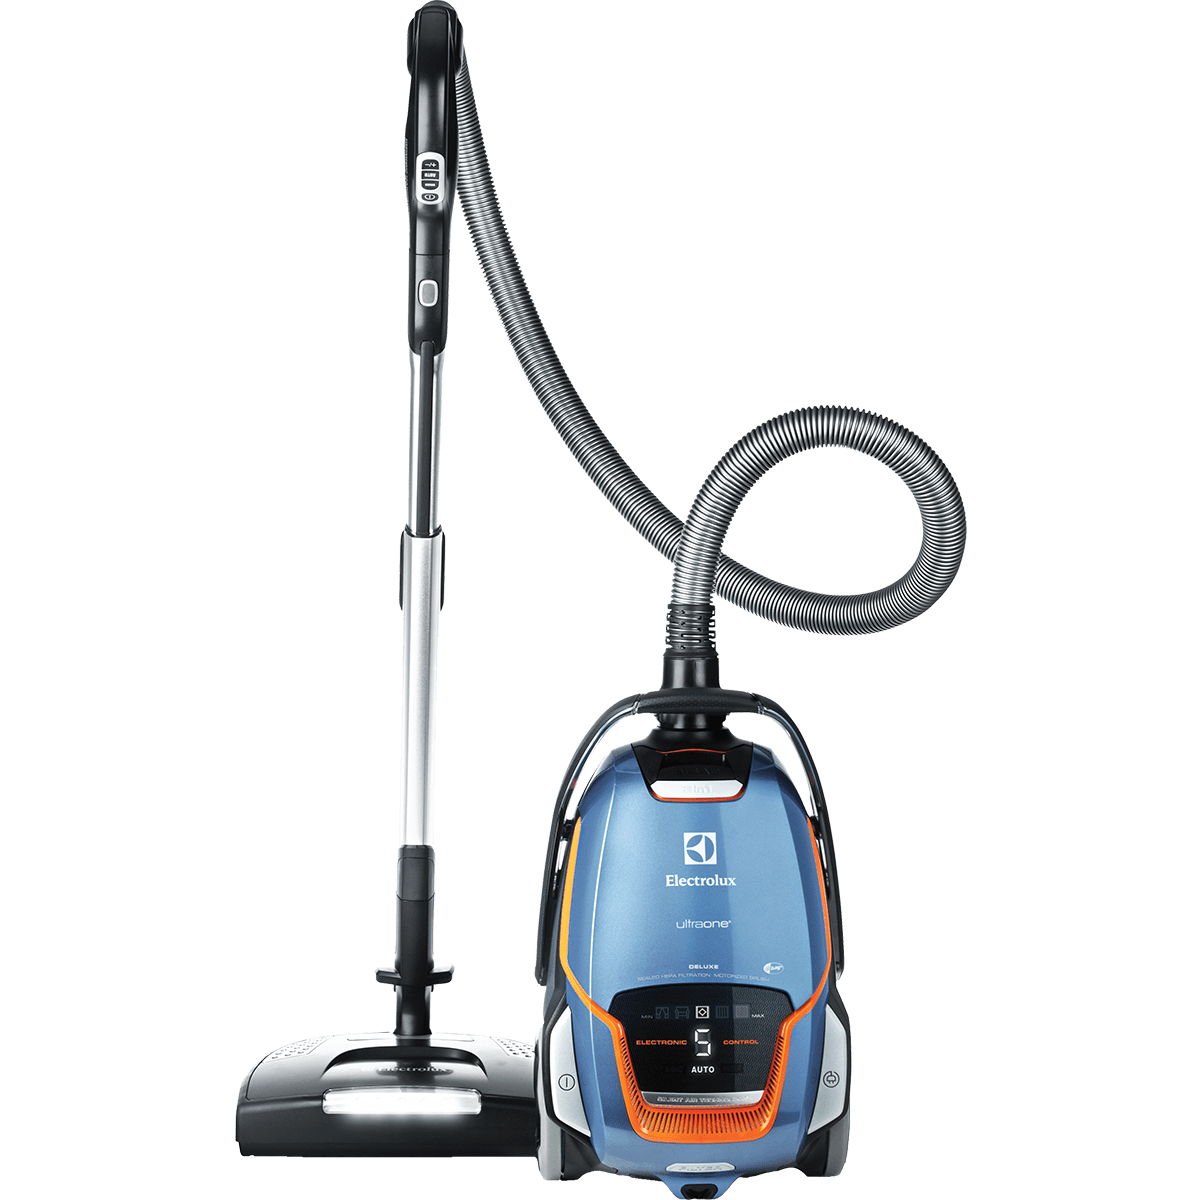 Electrolux Canister Vacuum Attachments Cleaner